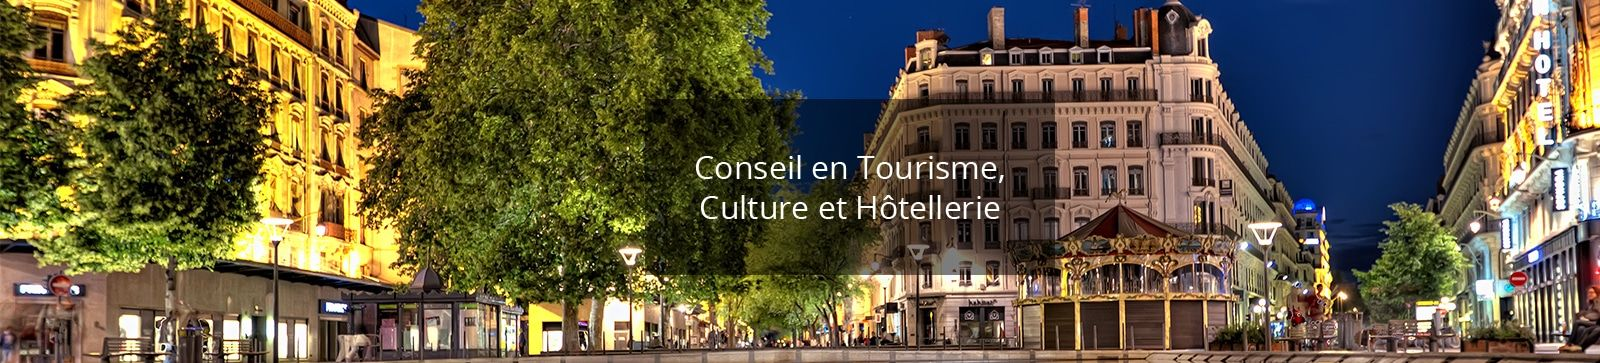 In extenso tch cabinet conseil tourisme culture et h tellerie - Cabinet conseil tourisme ...